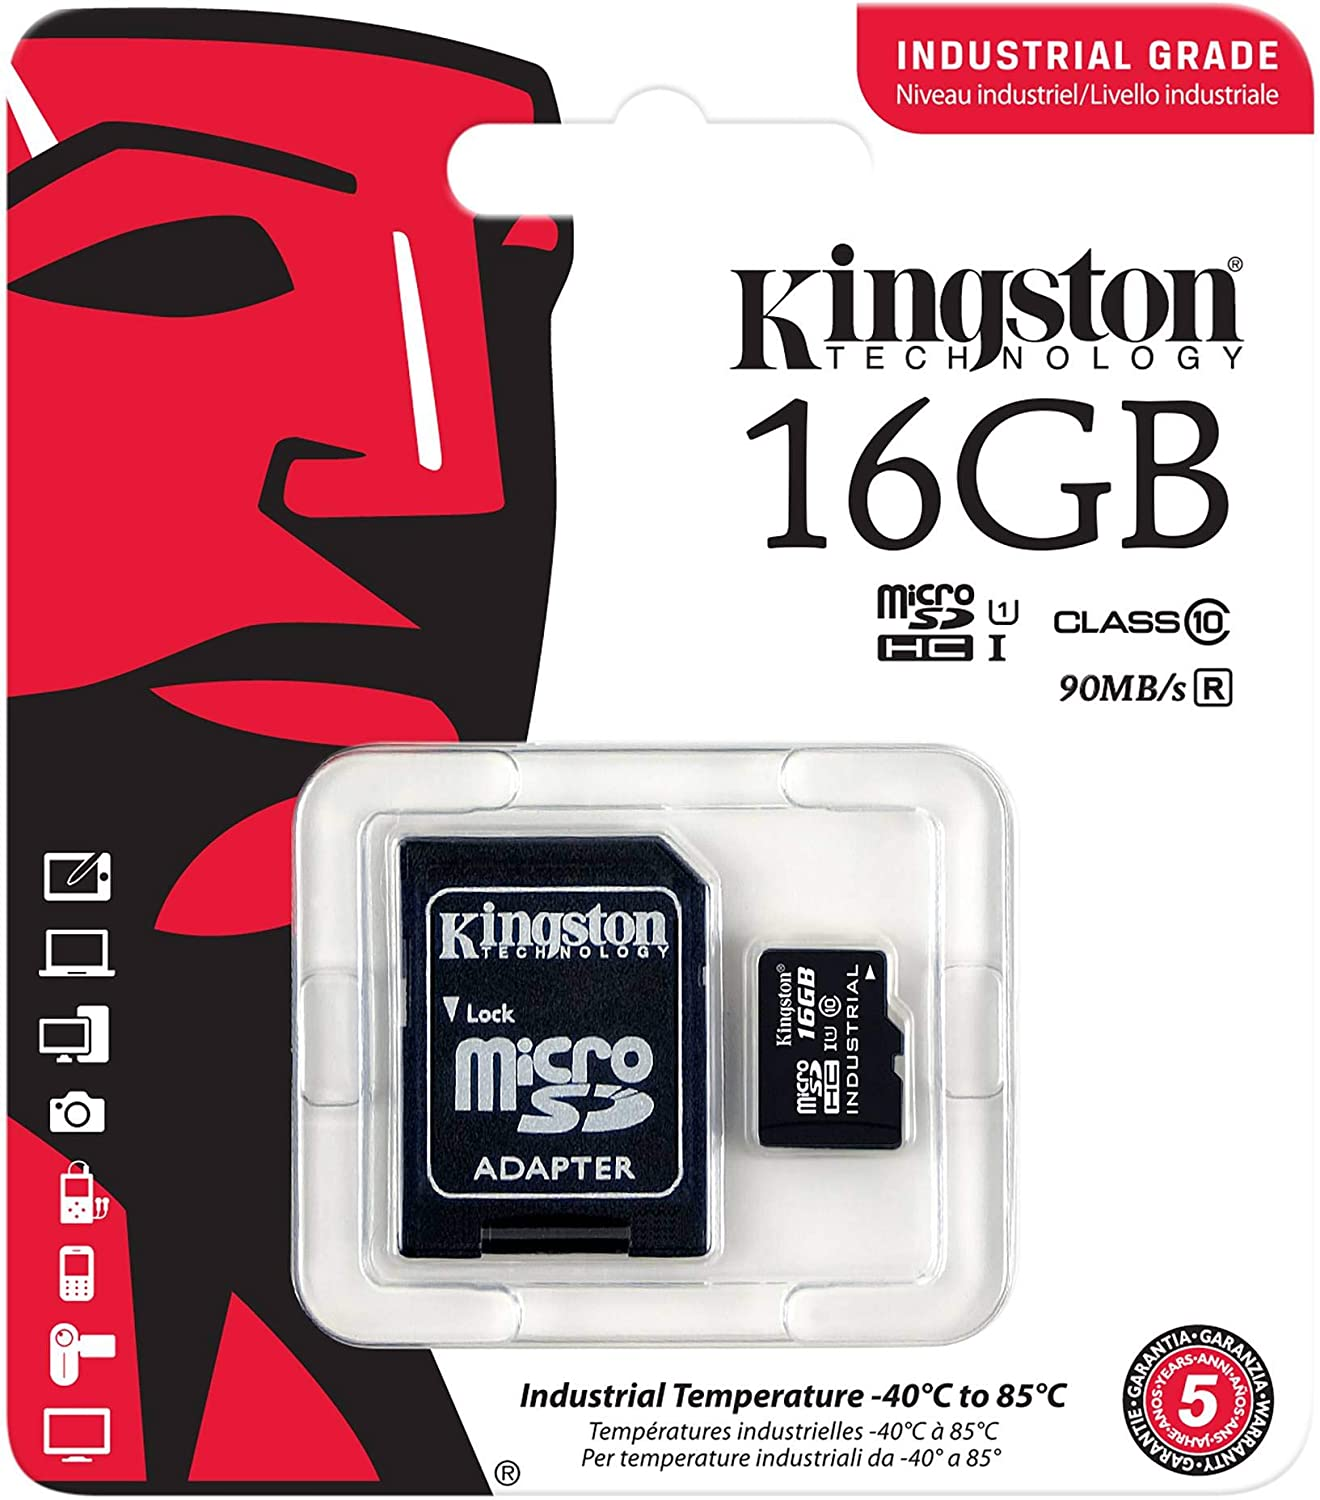 Kingston Industrial Grade 16GB NOA N7 MicroSDHC Card Verified by SanFlash. 90MBs Works for Kingston